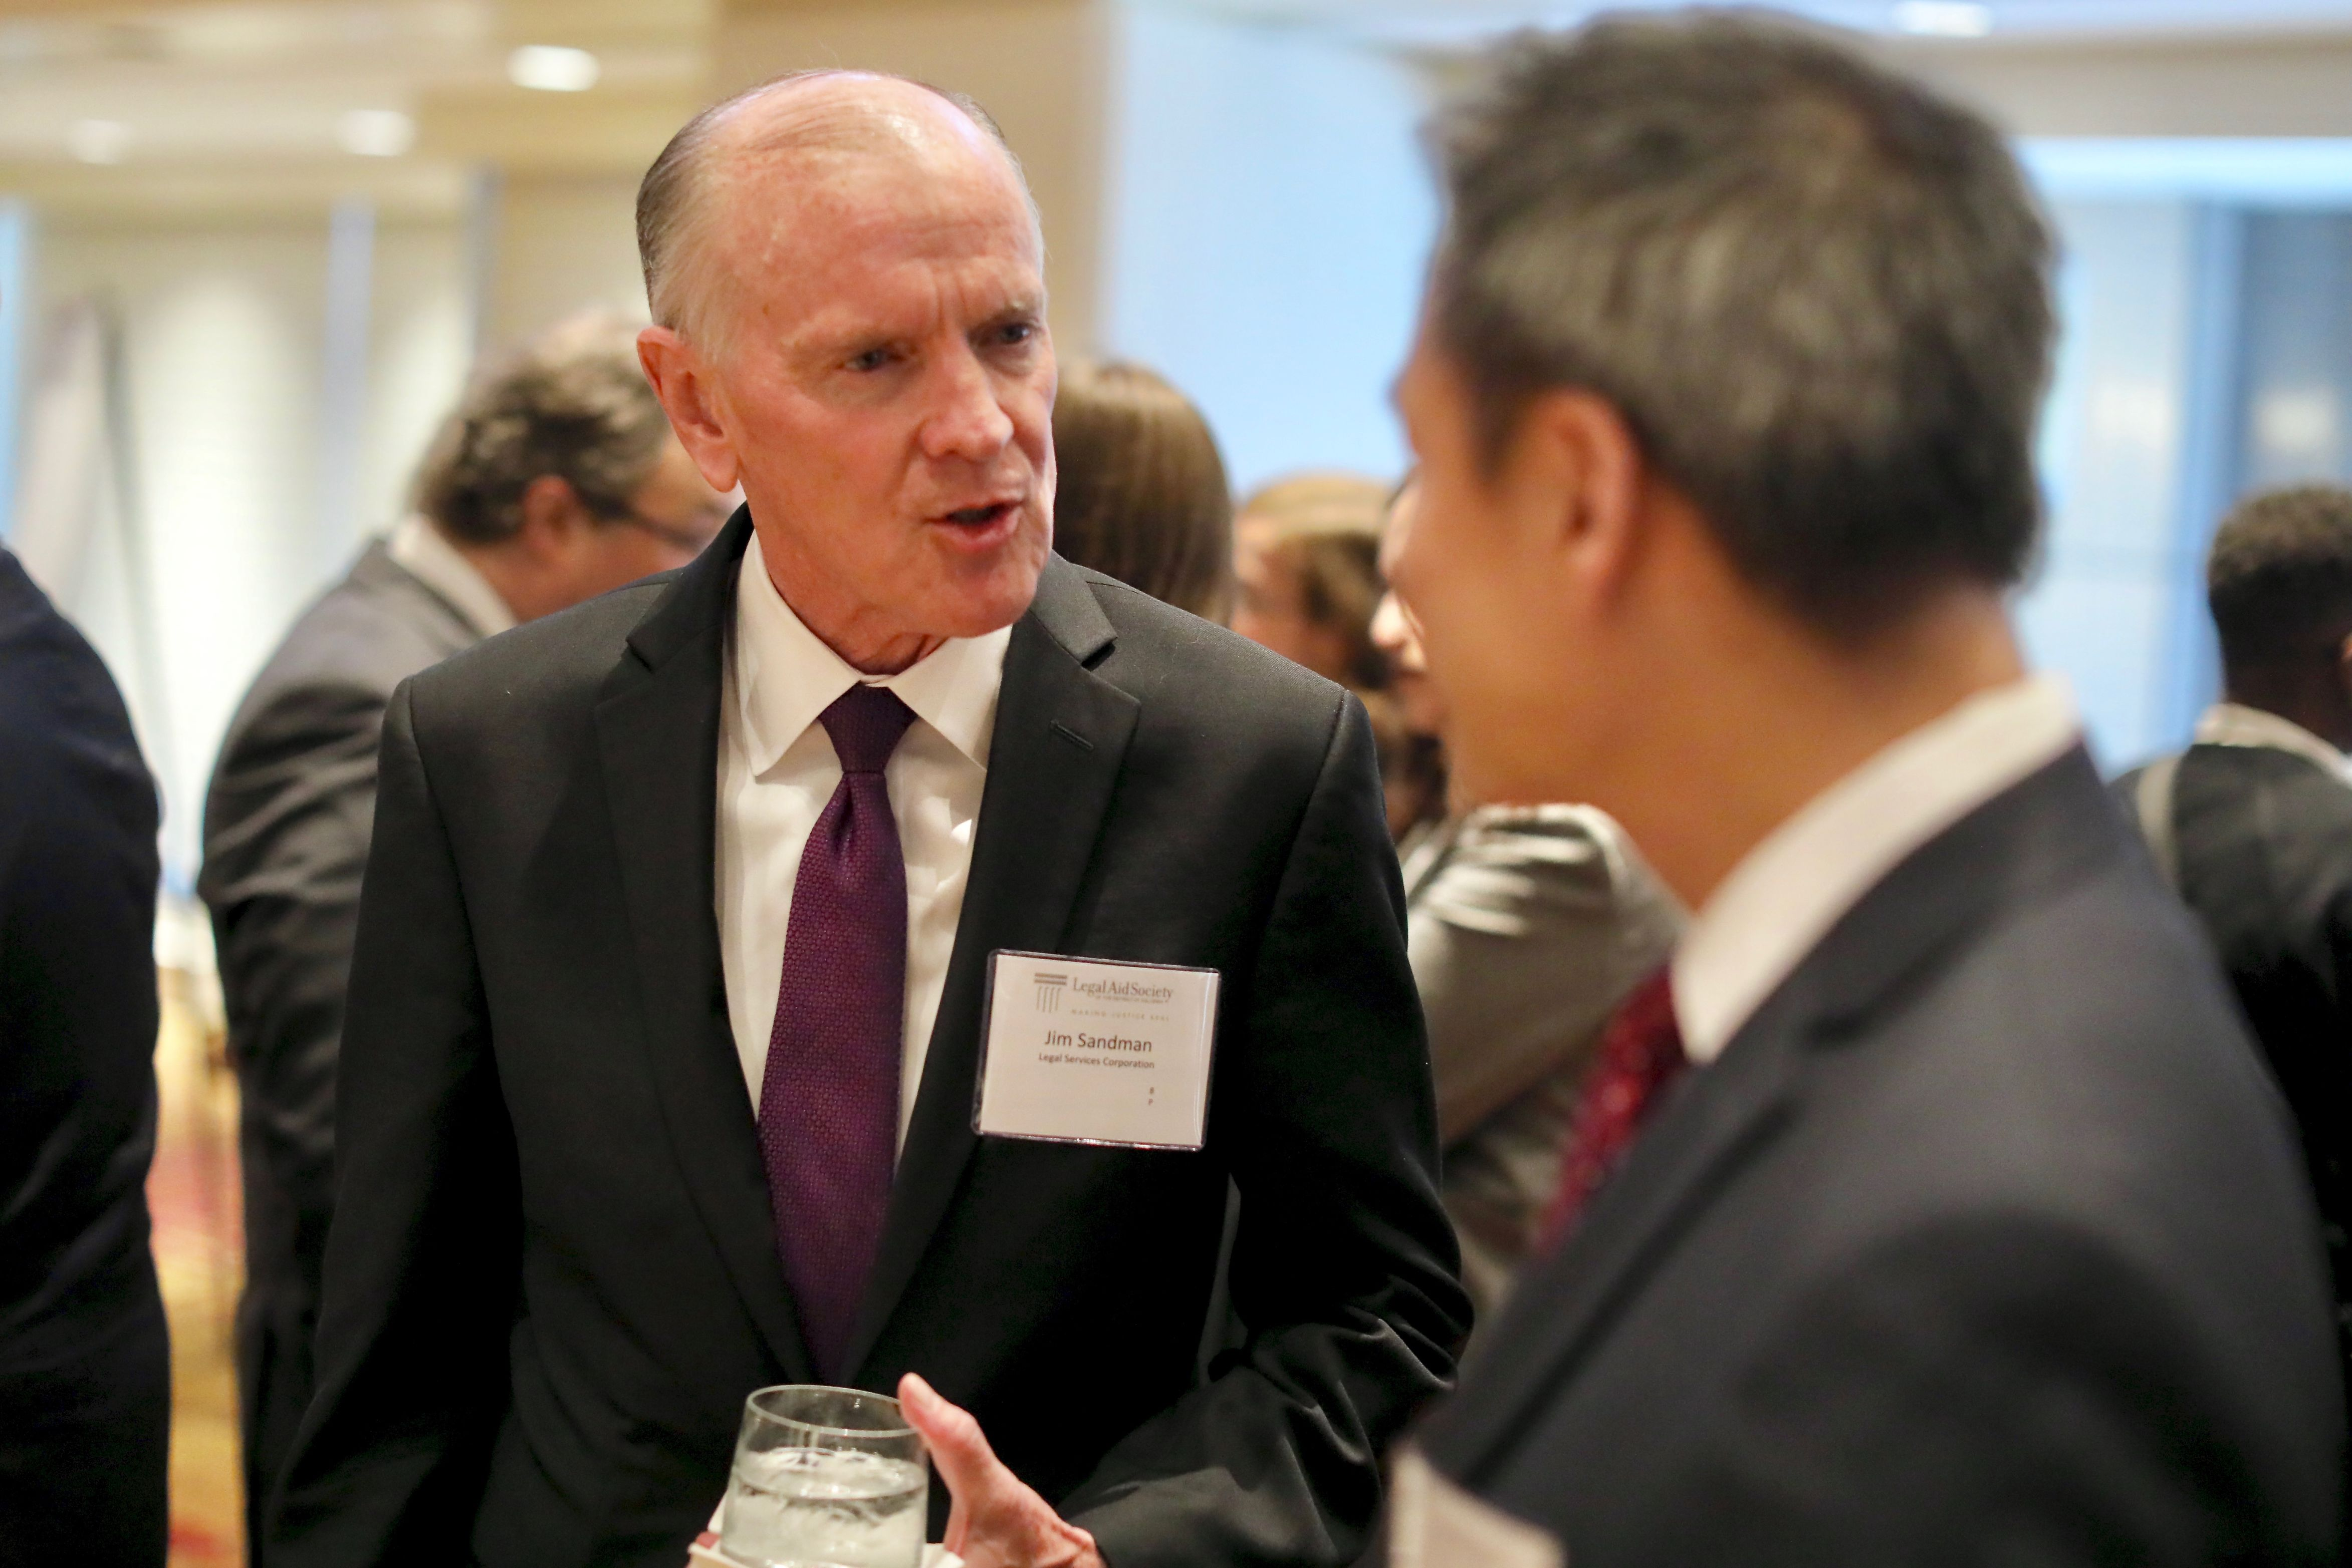 Jim Sandman, President of the Legal Services Corporation, with Legal Director Chinh Le